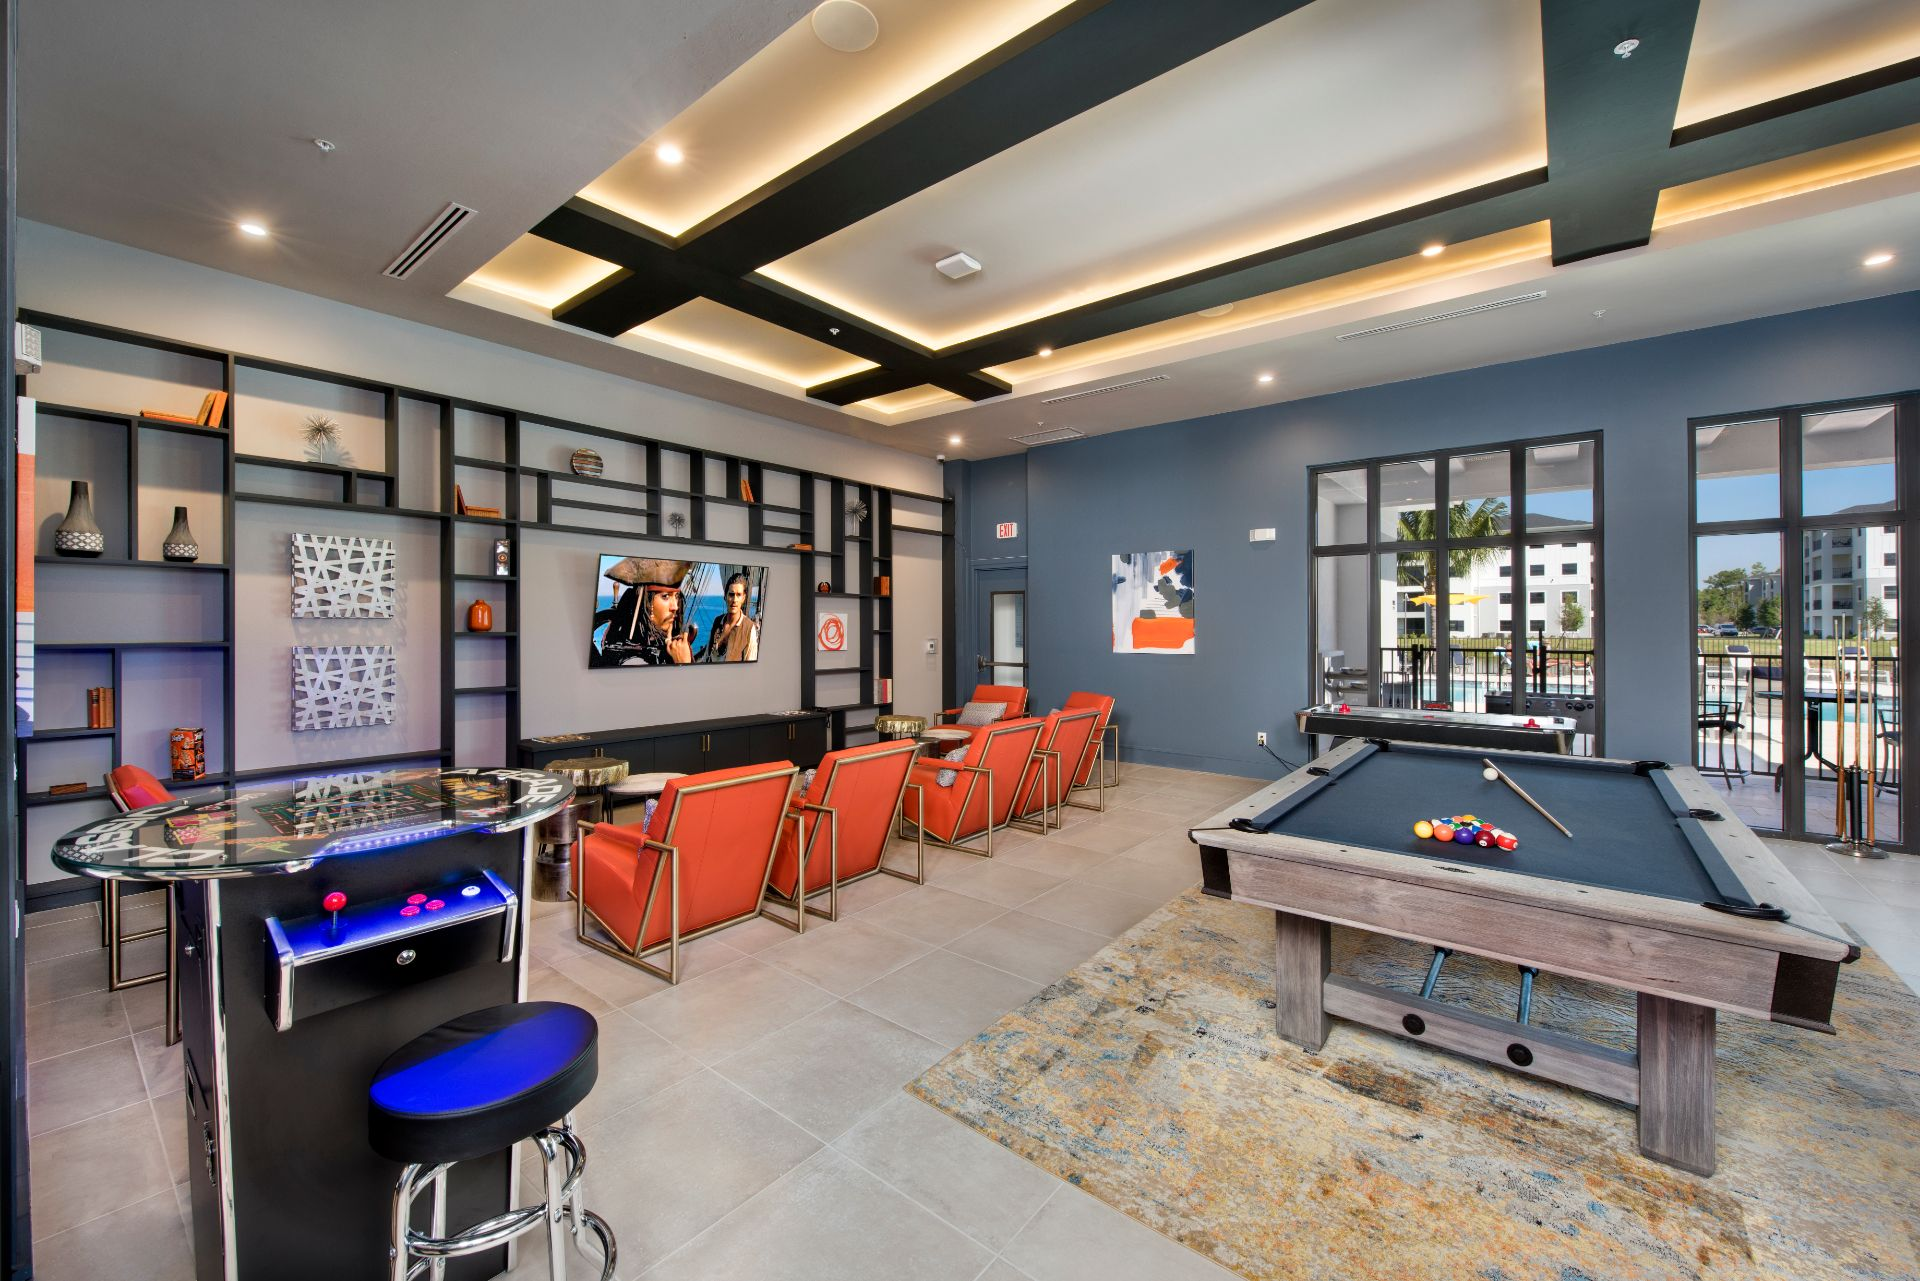 Entertainment room with pool table and TV